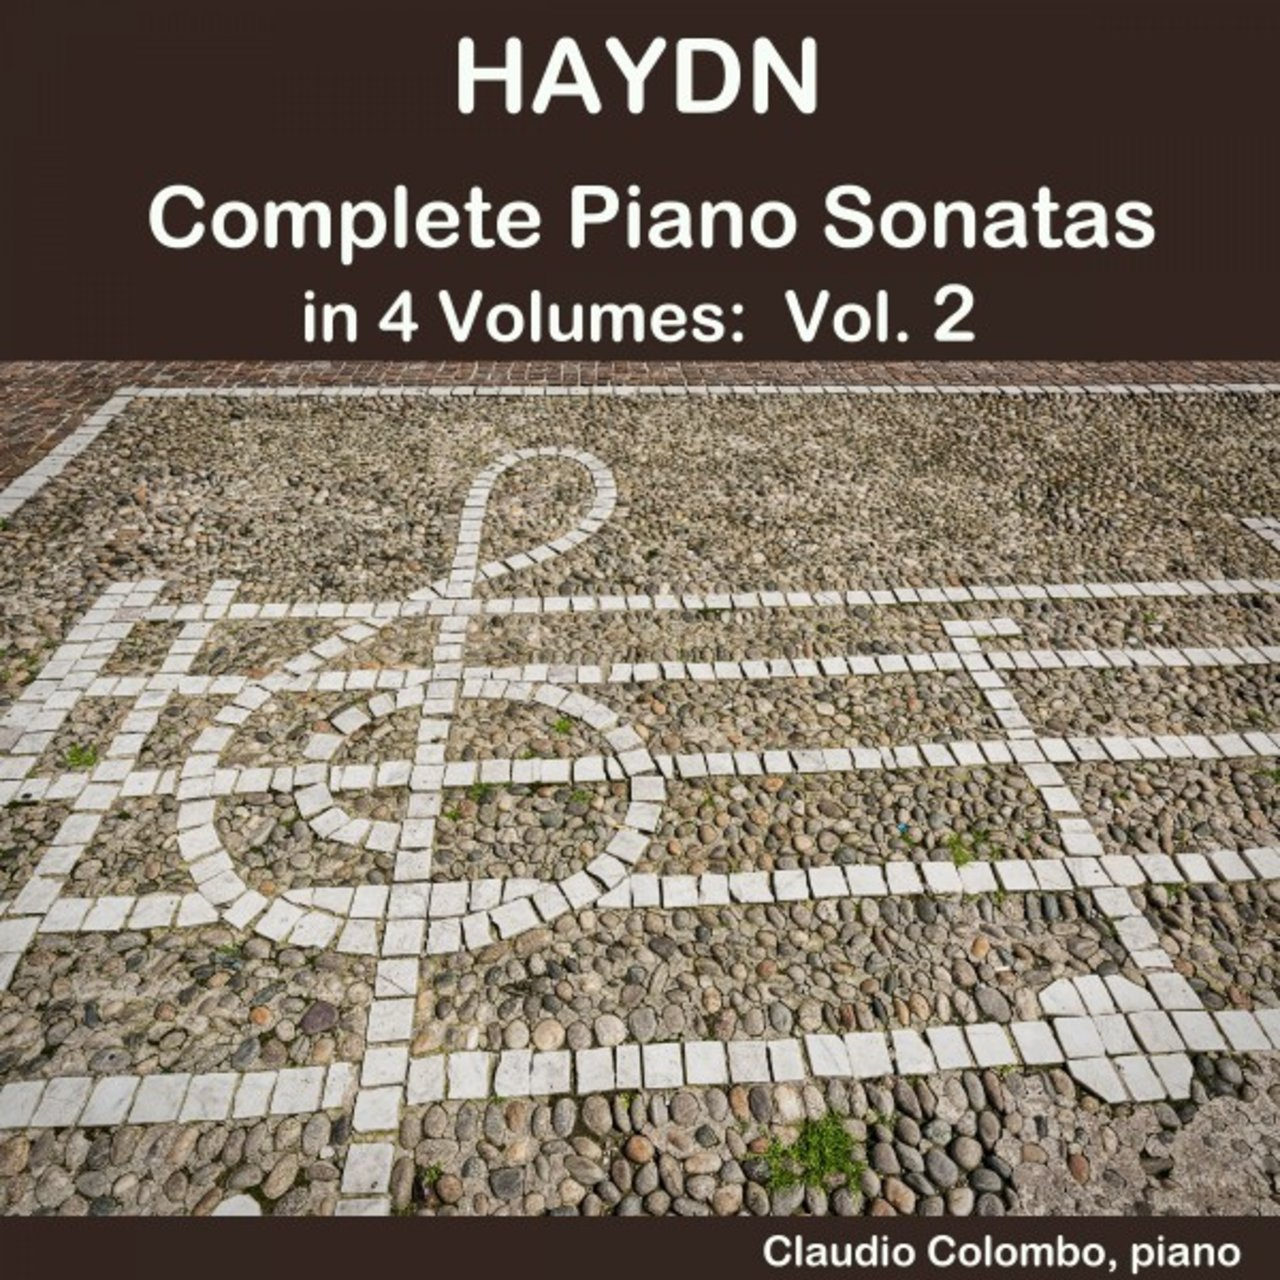 Haydn: Complete Piano Sonatas in 4 Volumes, Vol. 2